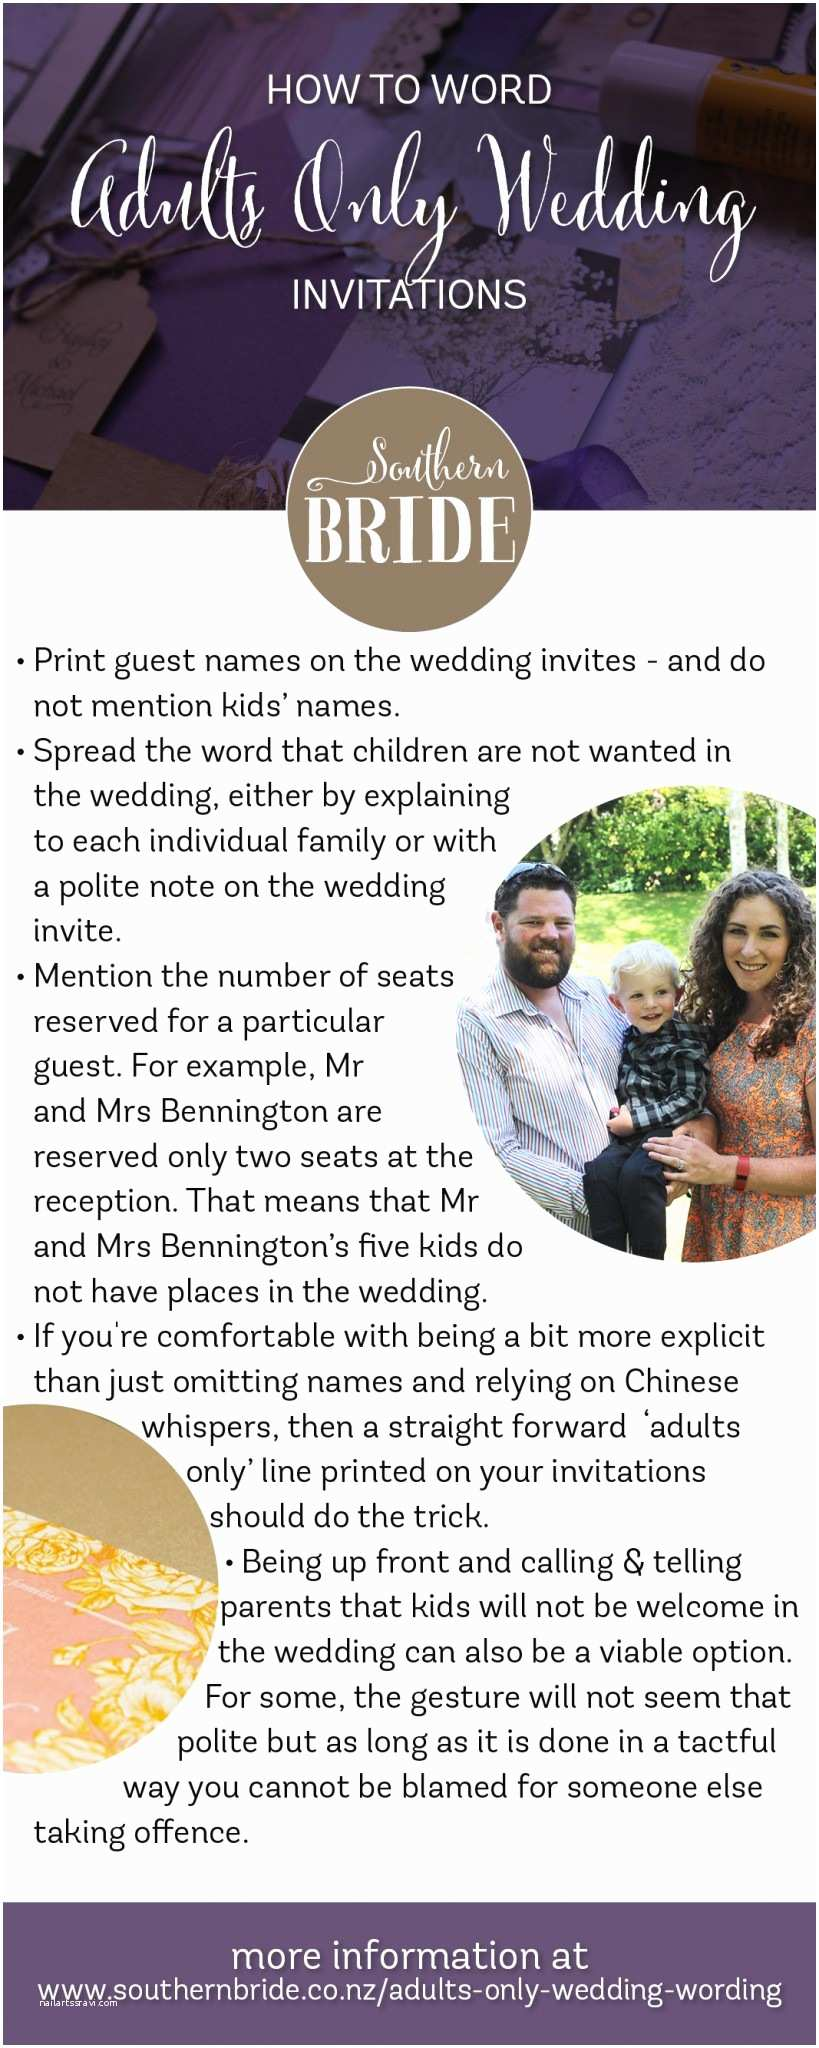 Adults Only Wedding Invitation Wording How to Tell Guests You are Having An Adults Only Wedding